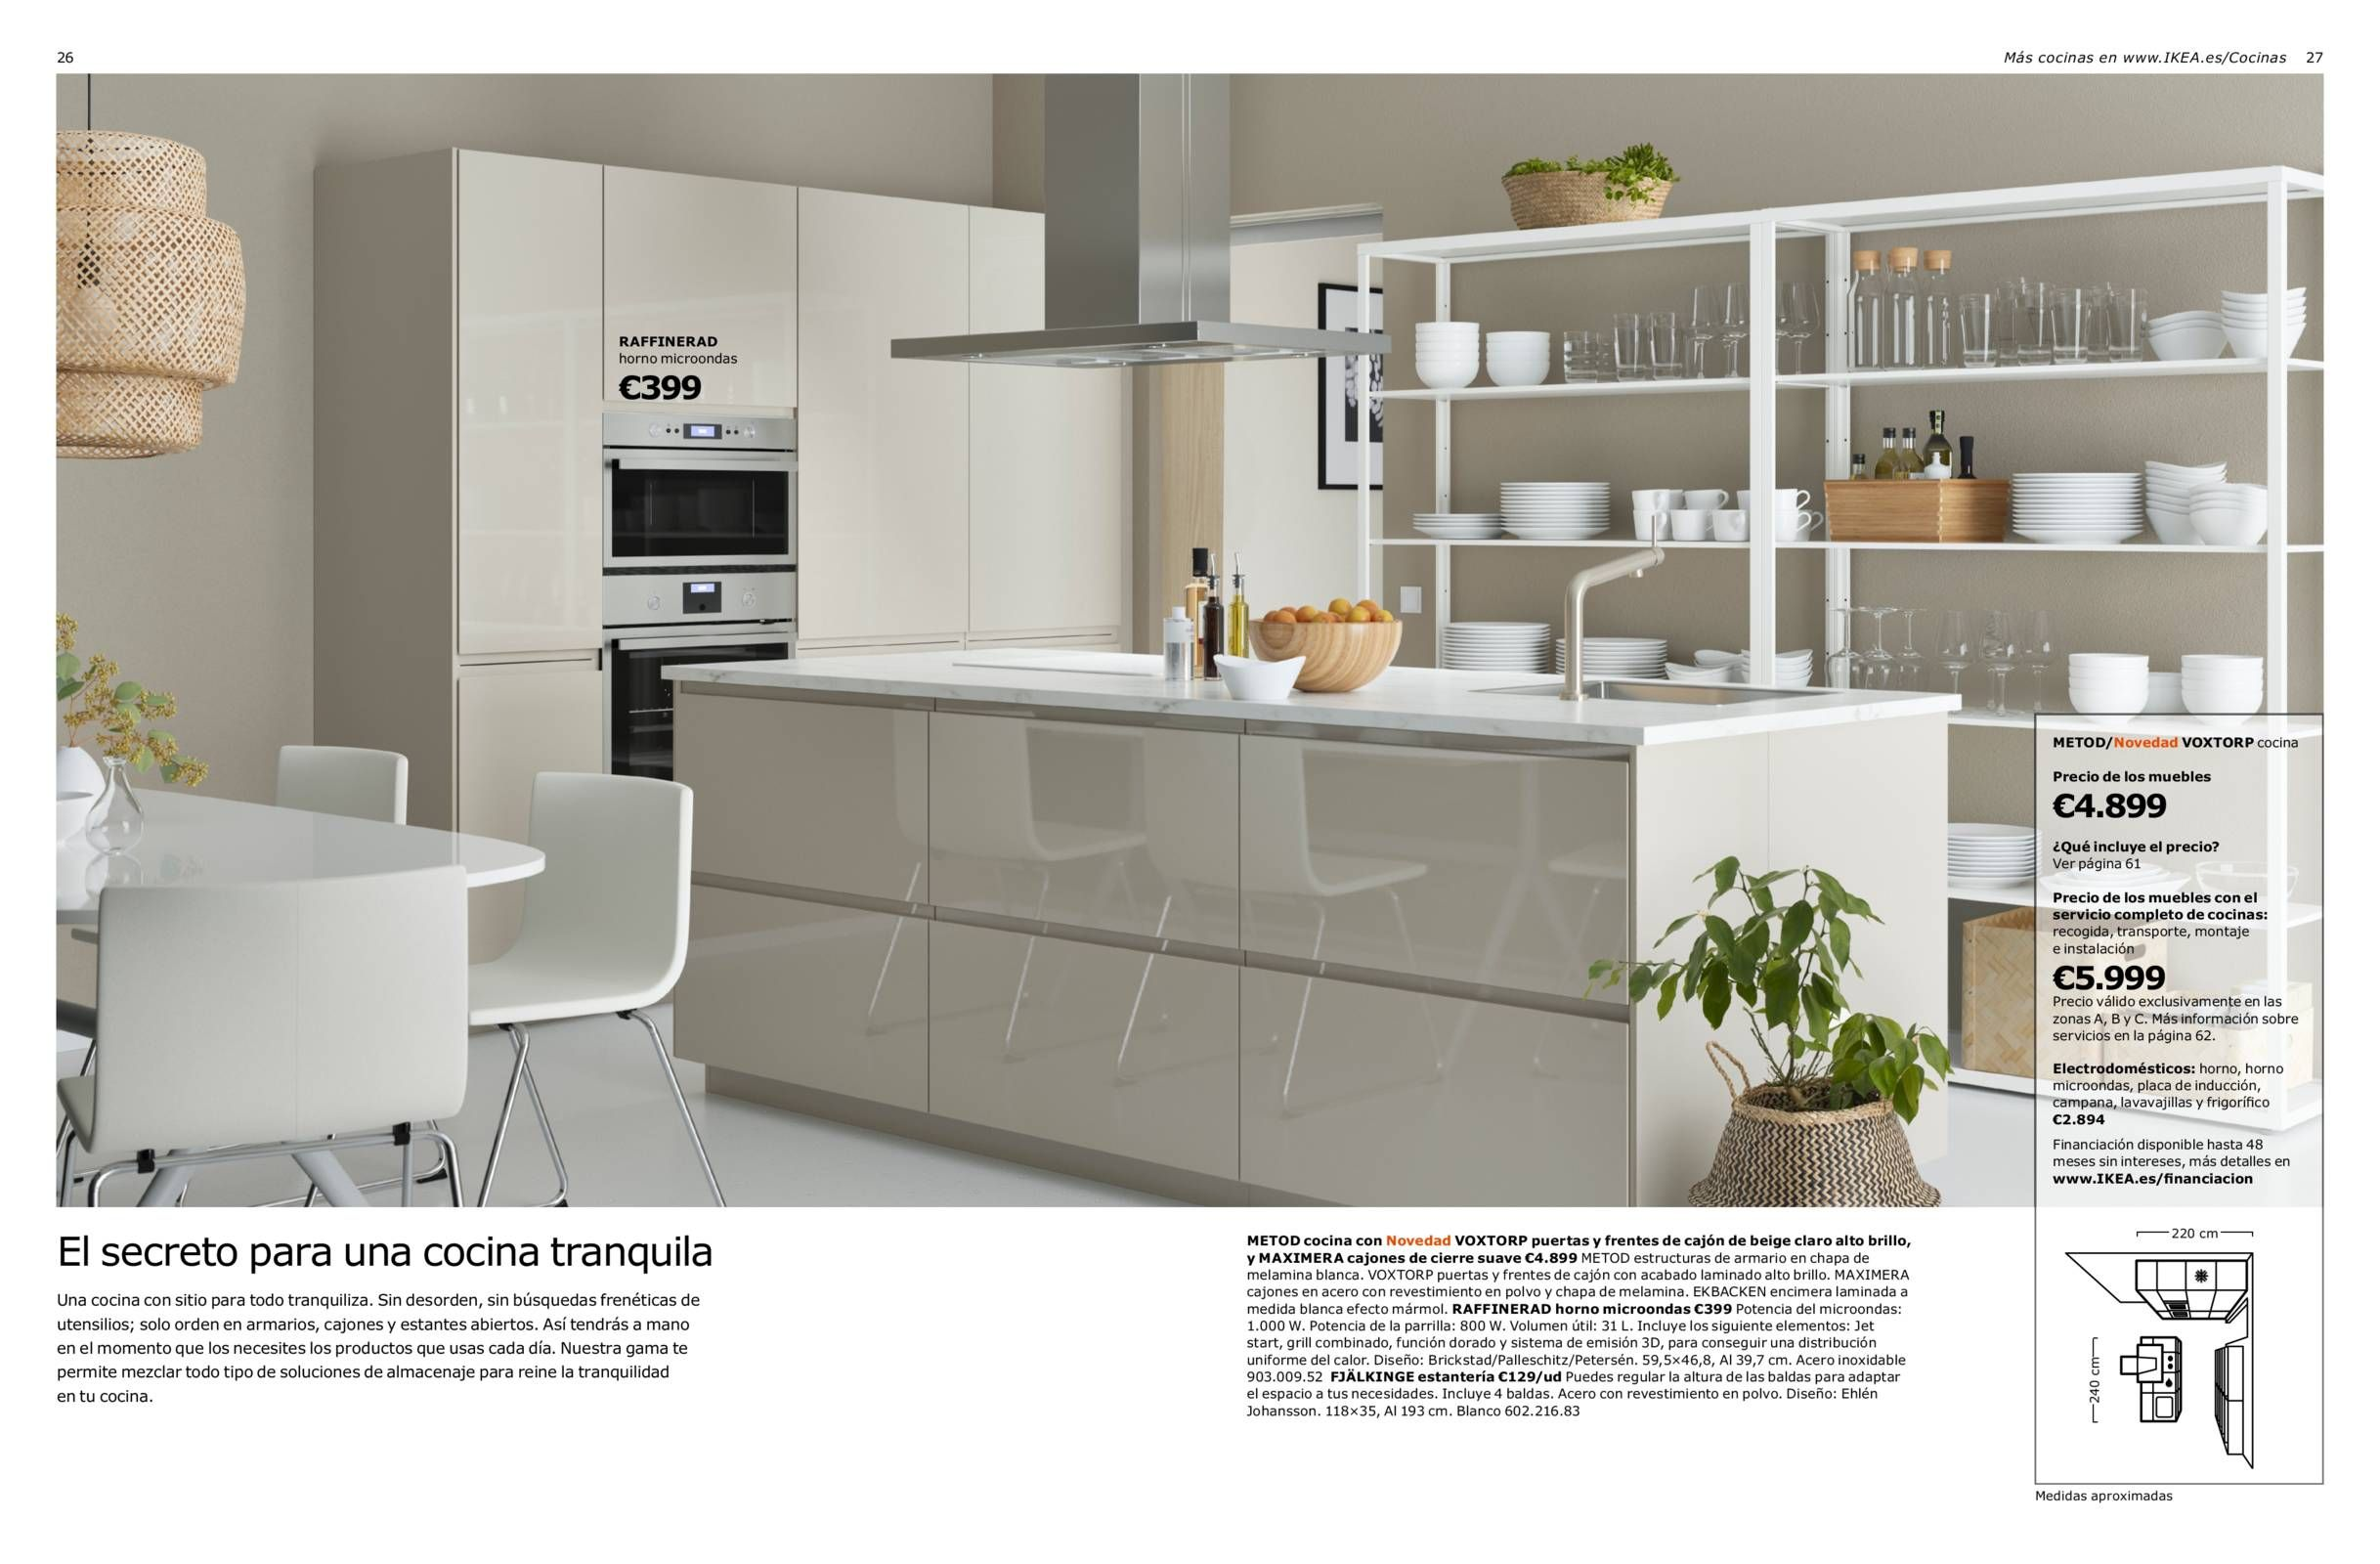 Pin by stefyriga on casa | Pinterest | Brochures, Ranges and Kitchens